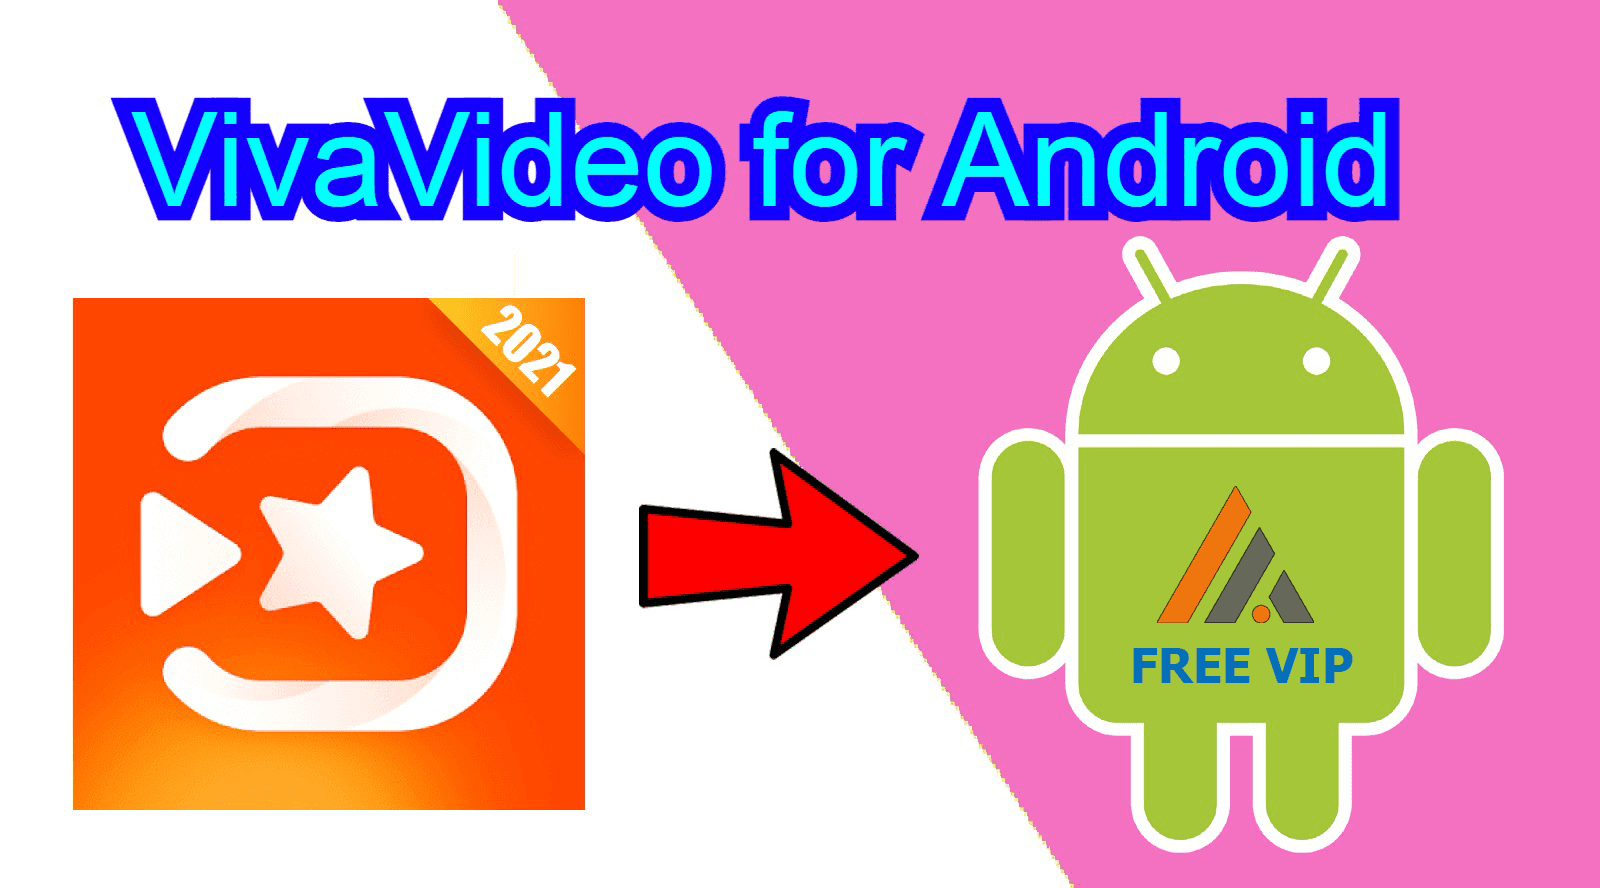 ViviaVideo for Android VIP free Download